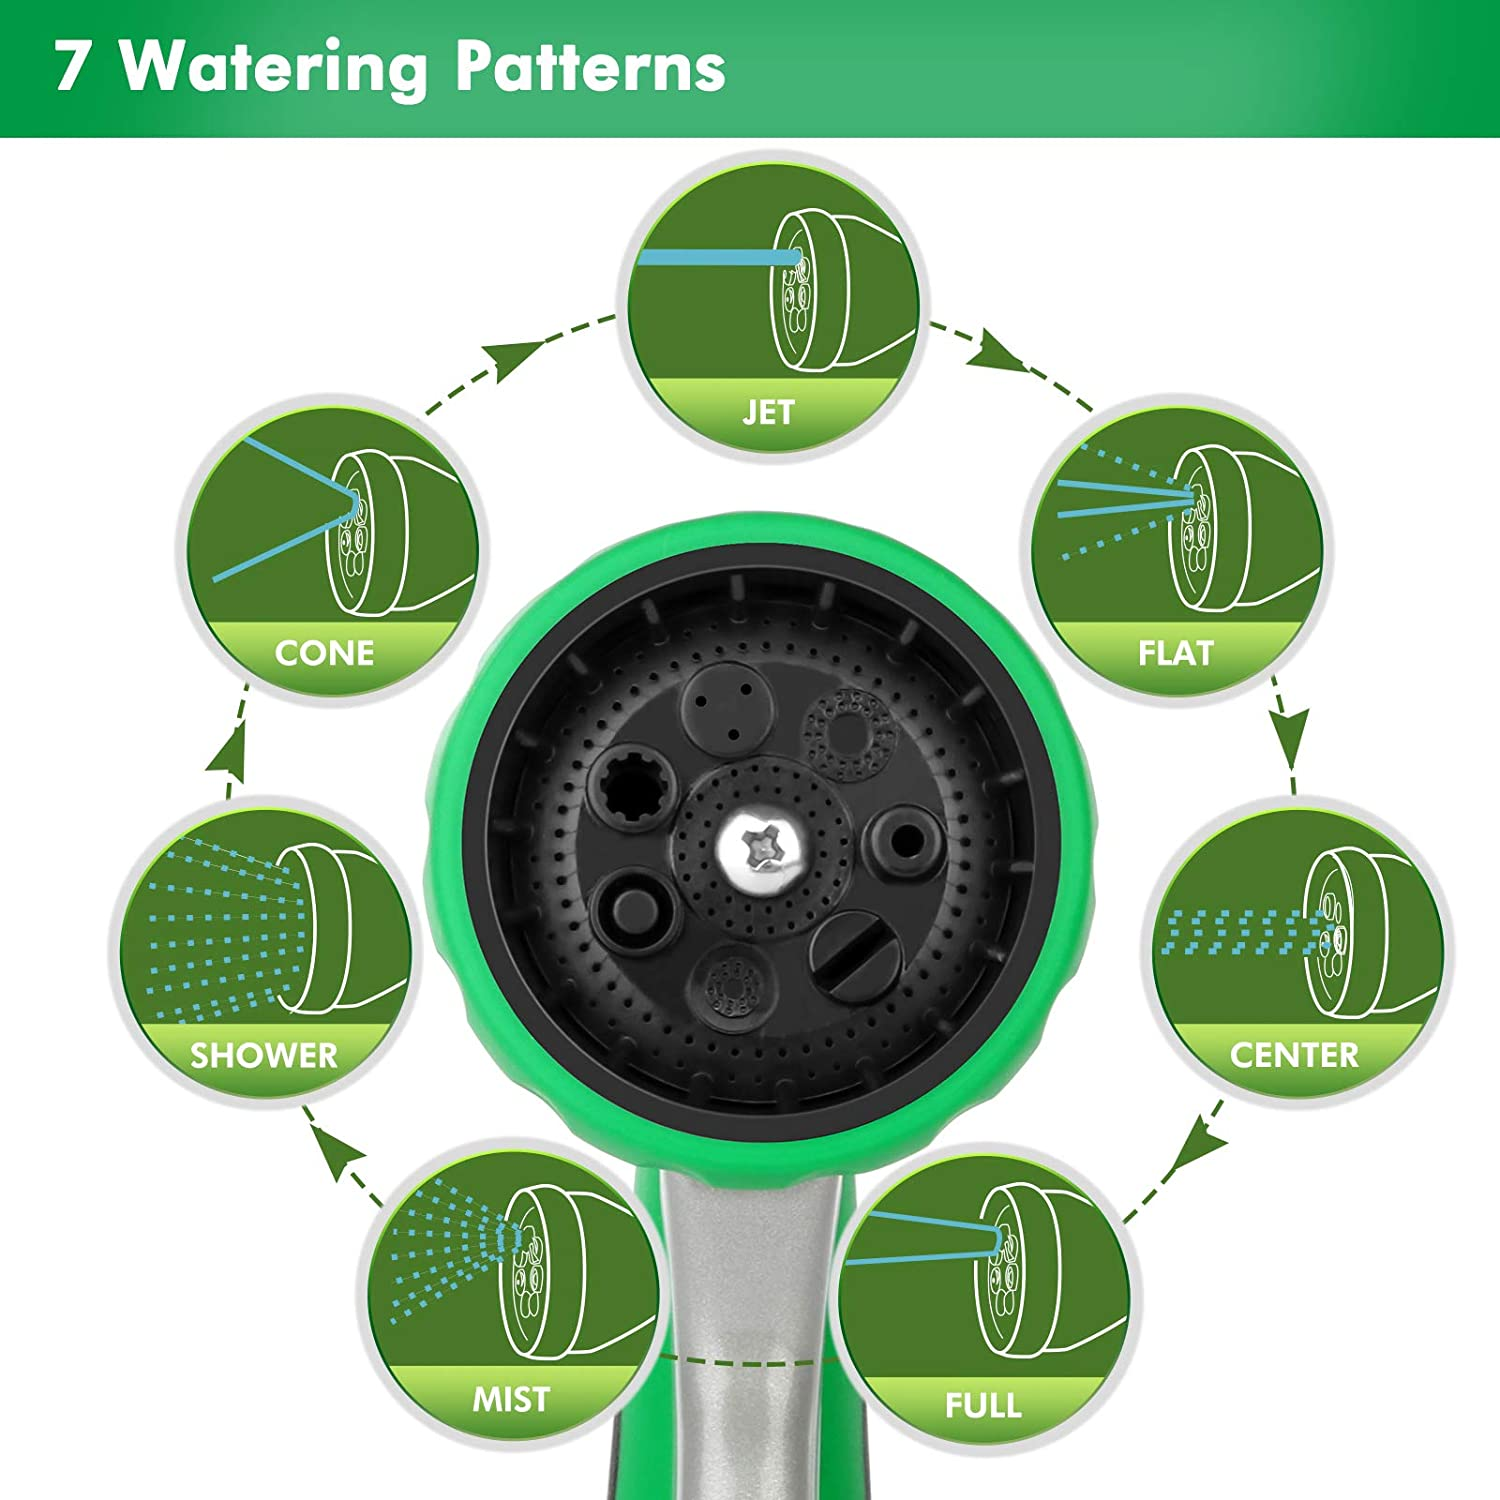 Seven Watering Patterns: It has a total of seven different watering patterns